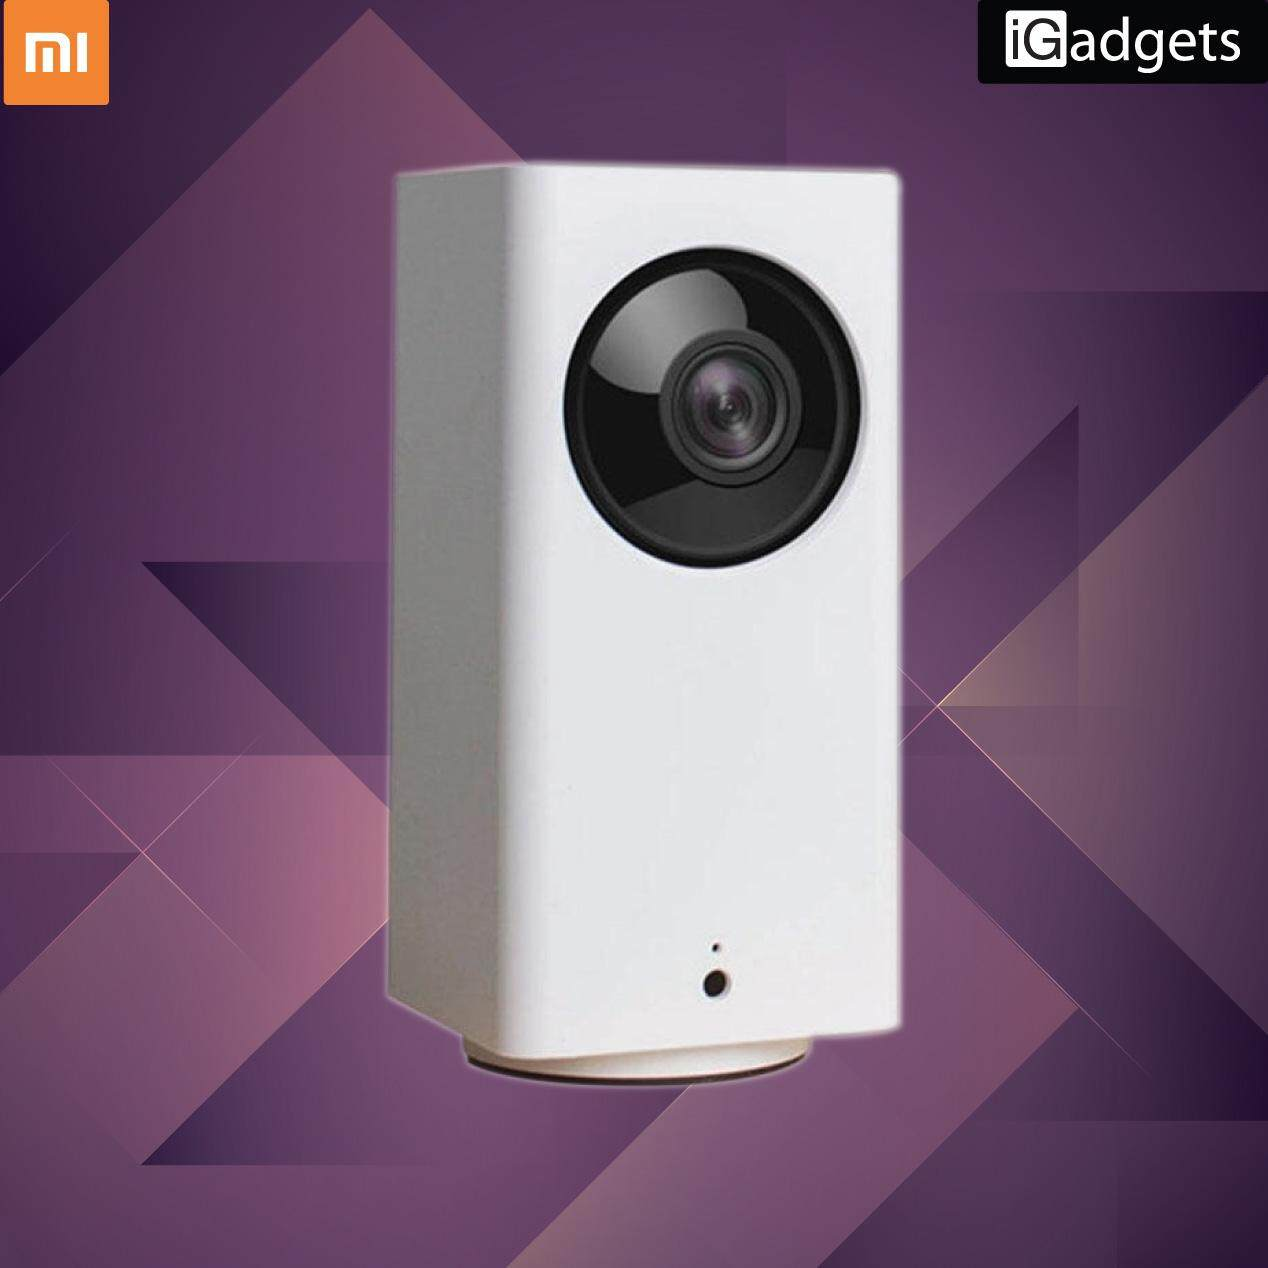 Xiaomi Mijia Dafang 120° Degree 1080p Hd Night Vision Camera [1 Year Warranty] By Igadgets.